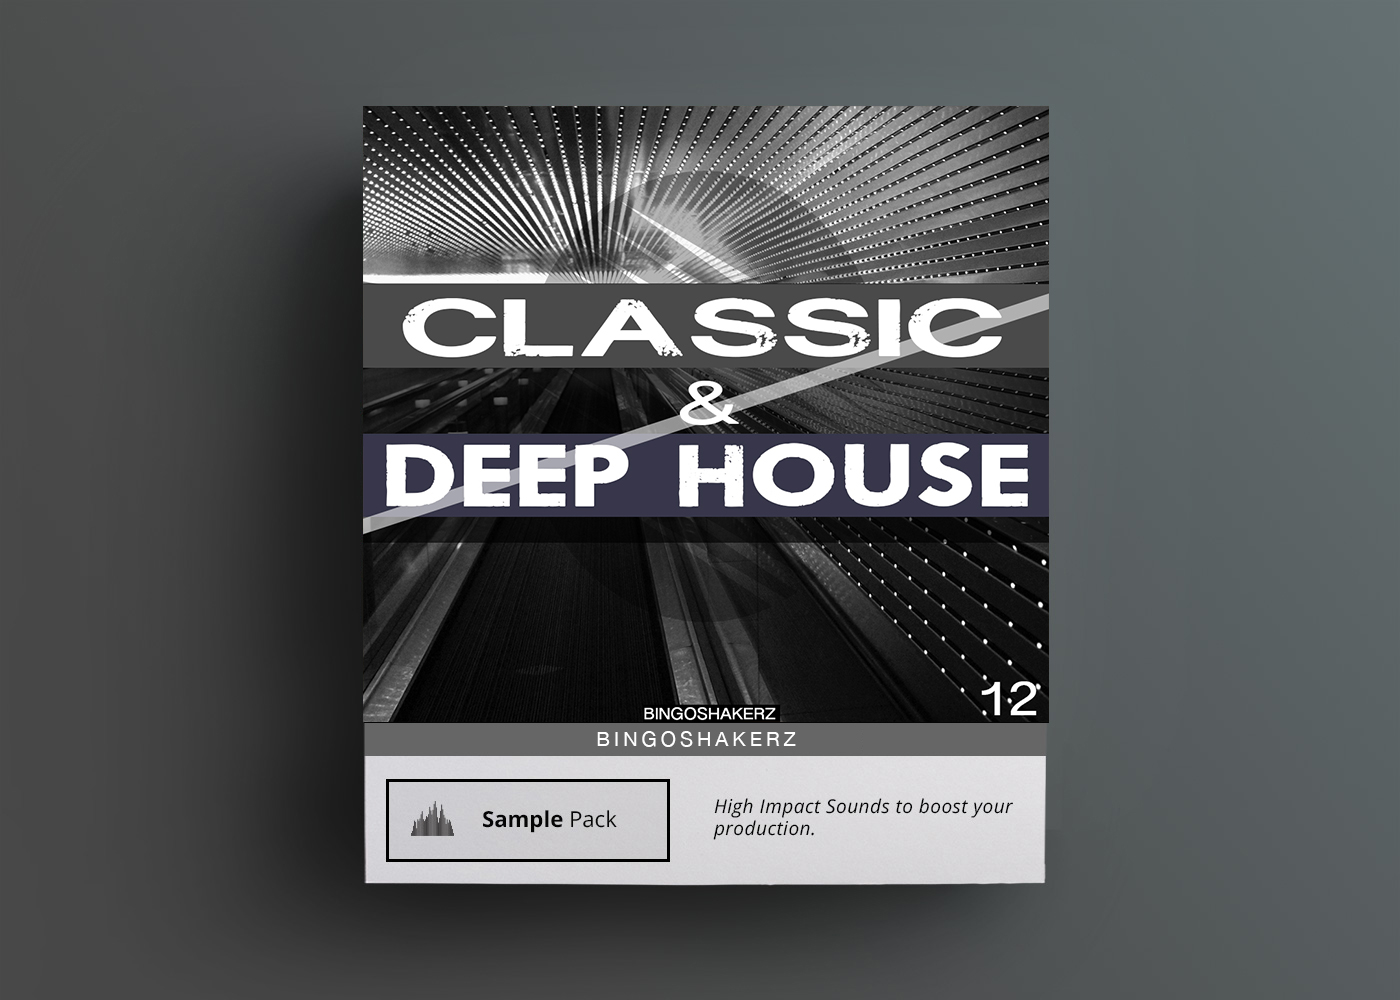 Bingoshakerz classic deep house by ted nilsson warp for Samplephonics classic deep house